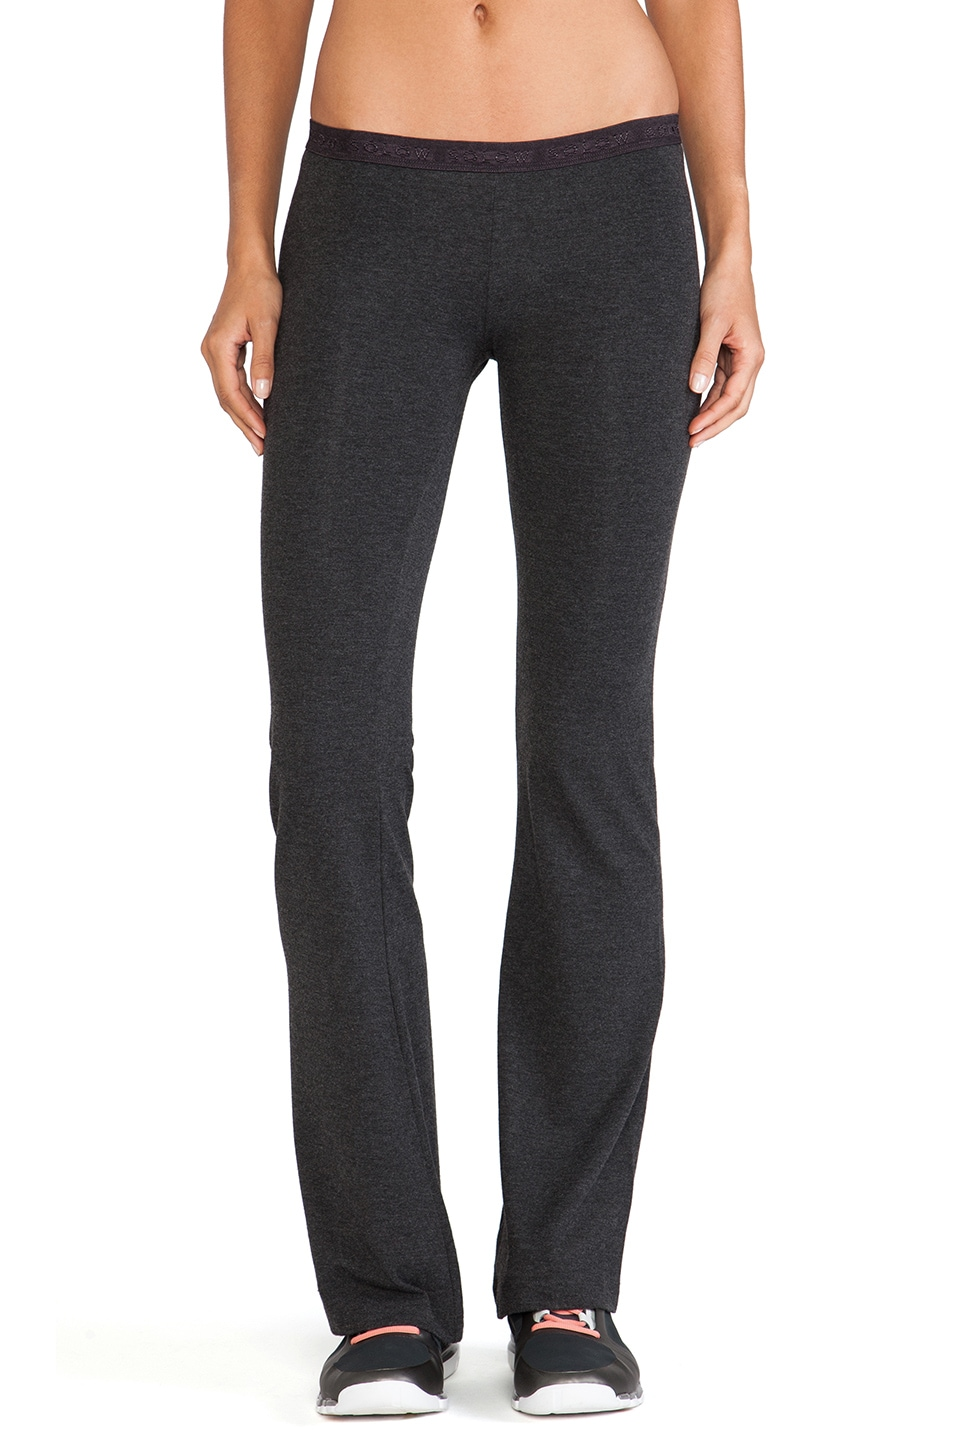 SOLOW So Low Foxy Flare Pant in Heather Charcoal